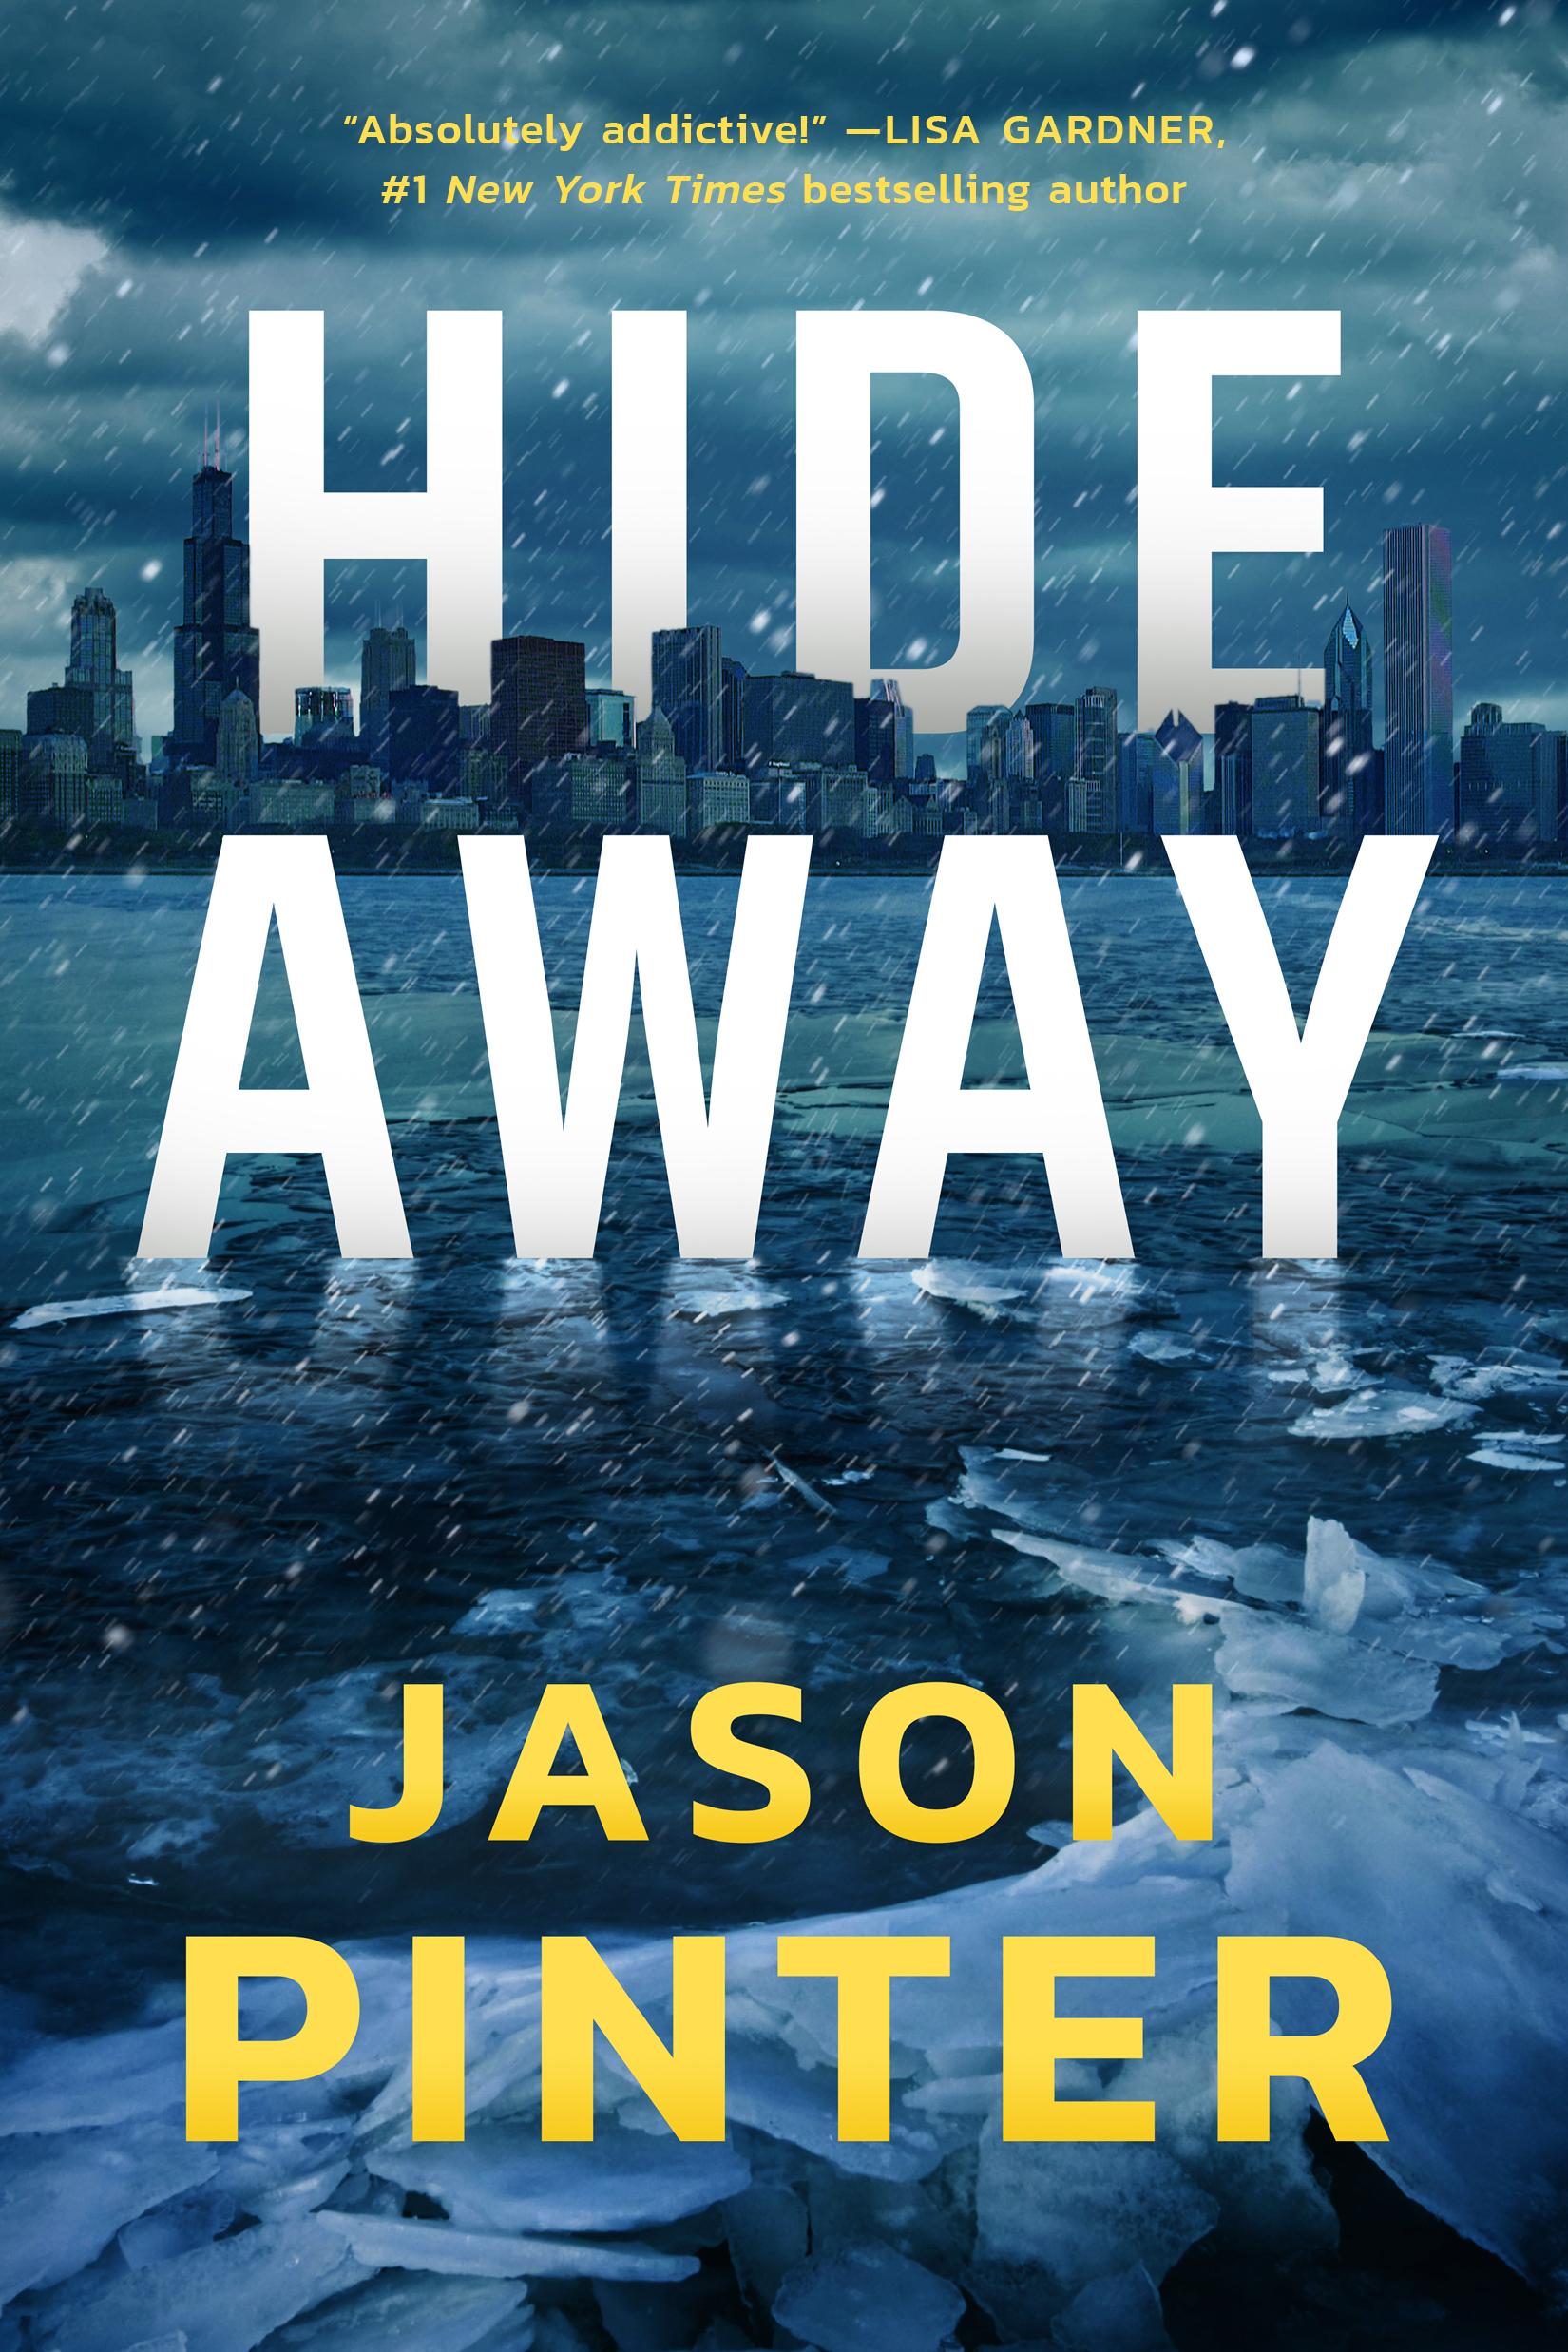 """HIDE AWAY - """"Some who are broken come back stronger—and ready to fight. Rachel Marin is just such a woman, and in the twisty-turny Hide Away, she faces a battle so compelling you won't be able to look away. Rachel Marin is surely one of the most fascinating new heroines in crime fiction."""" —Tess Gerritsen""""Absolutely addictive! Pinter's Hide Away breaks new ground with the kind of vigilante heroine who can hunt down the bad guys, serve up some justice, then return home in time for breakfast with the kids. Bravo!"""" —Lisa GardnerPre-order now!Paperback • ebook • audiobookAdd on Goodreads!Coming January 2020"""